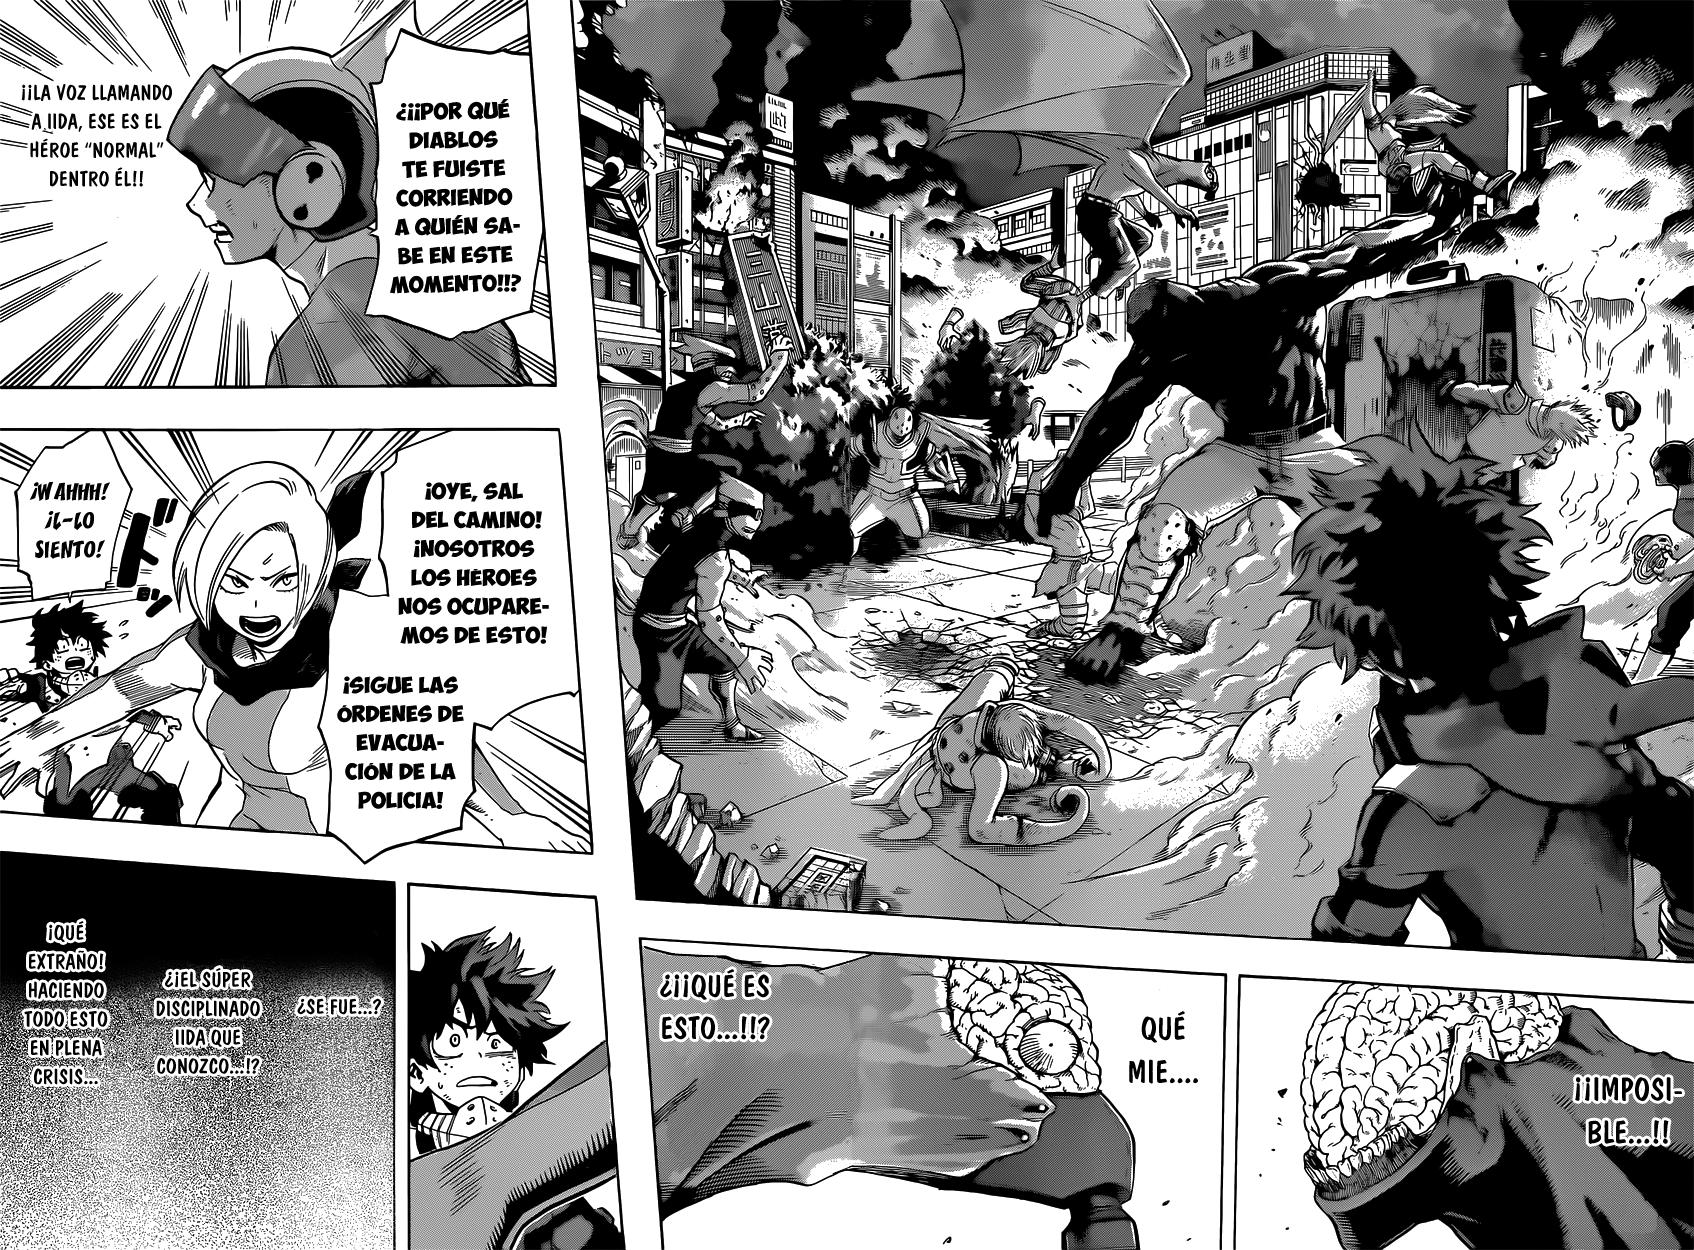 http://c5.ninemanga.com/es_manga/54/182/390109/b36906166404660d7df94261f4d3c9a8.jpg Page 7